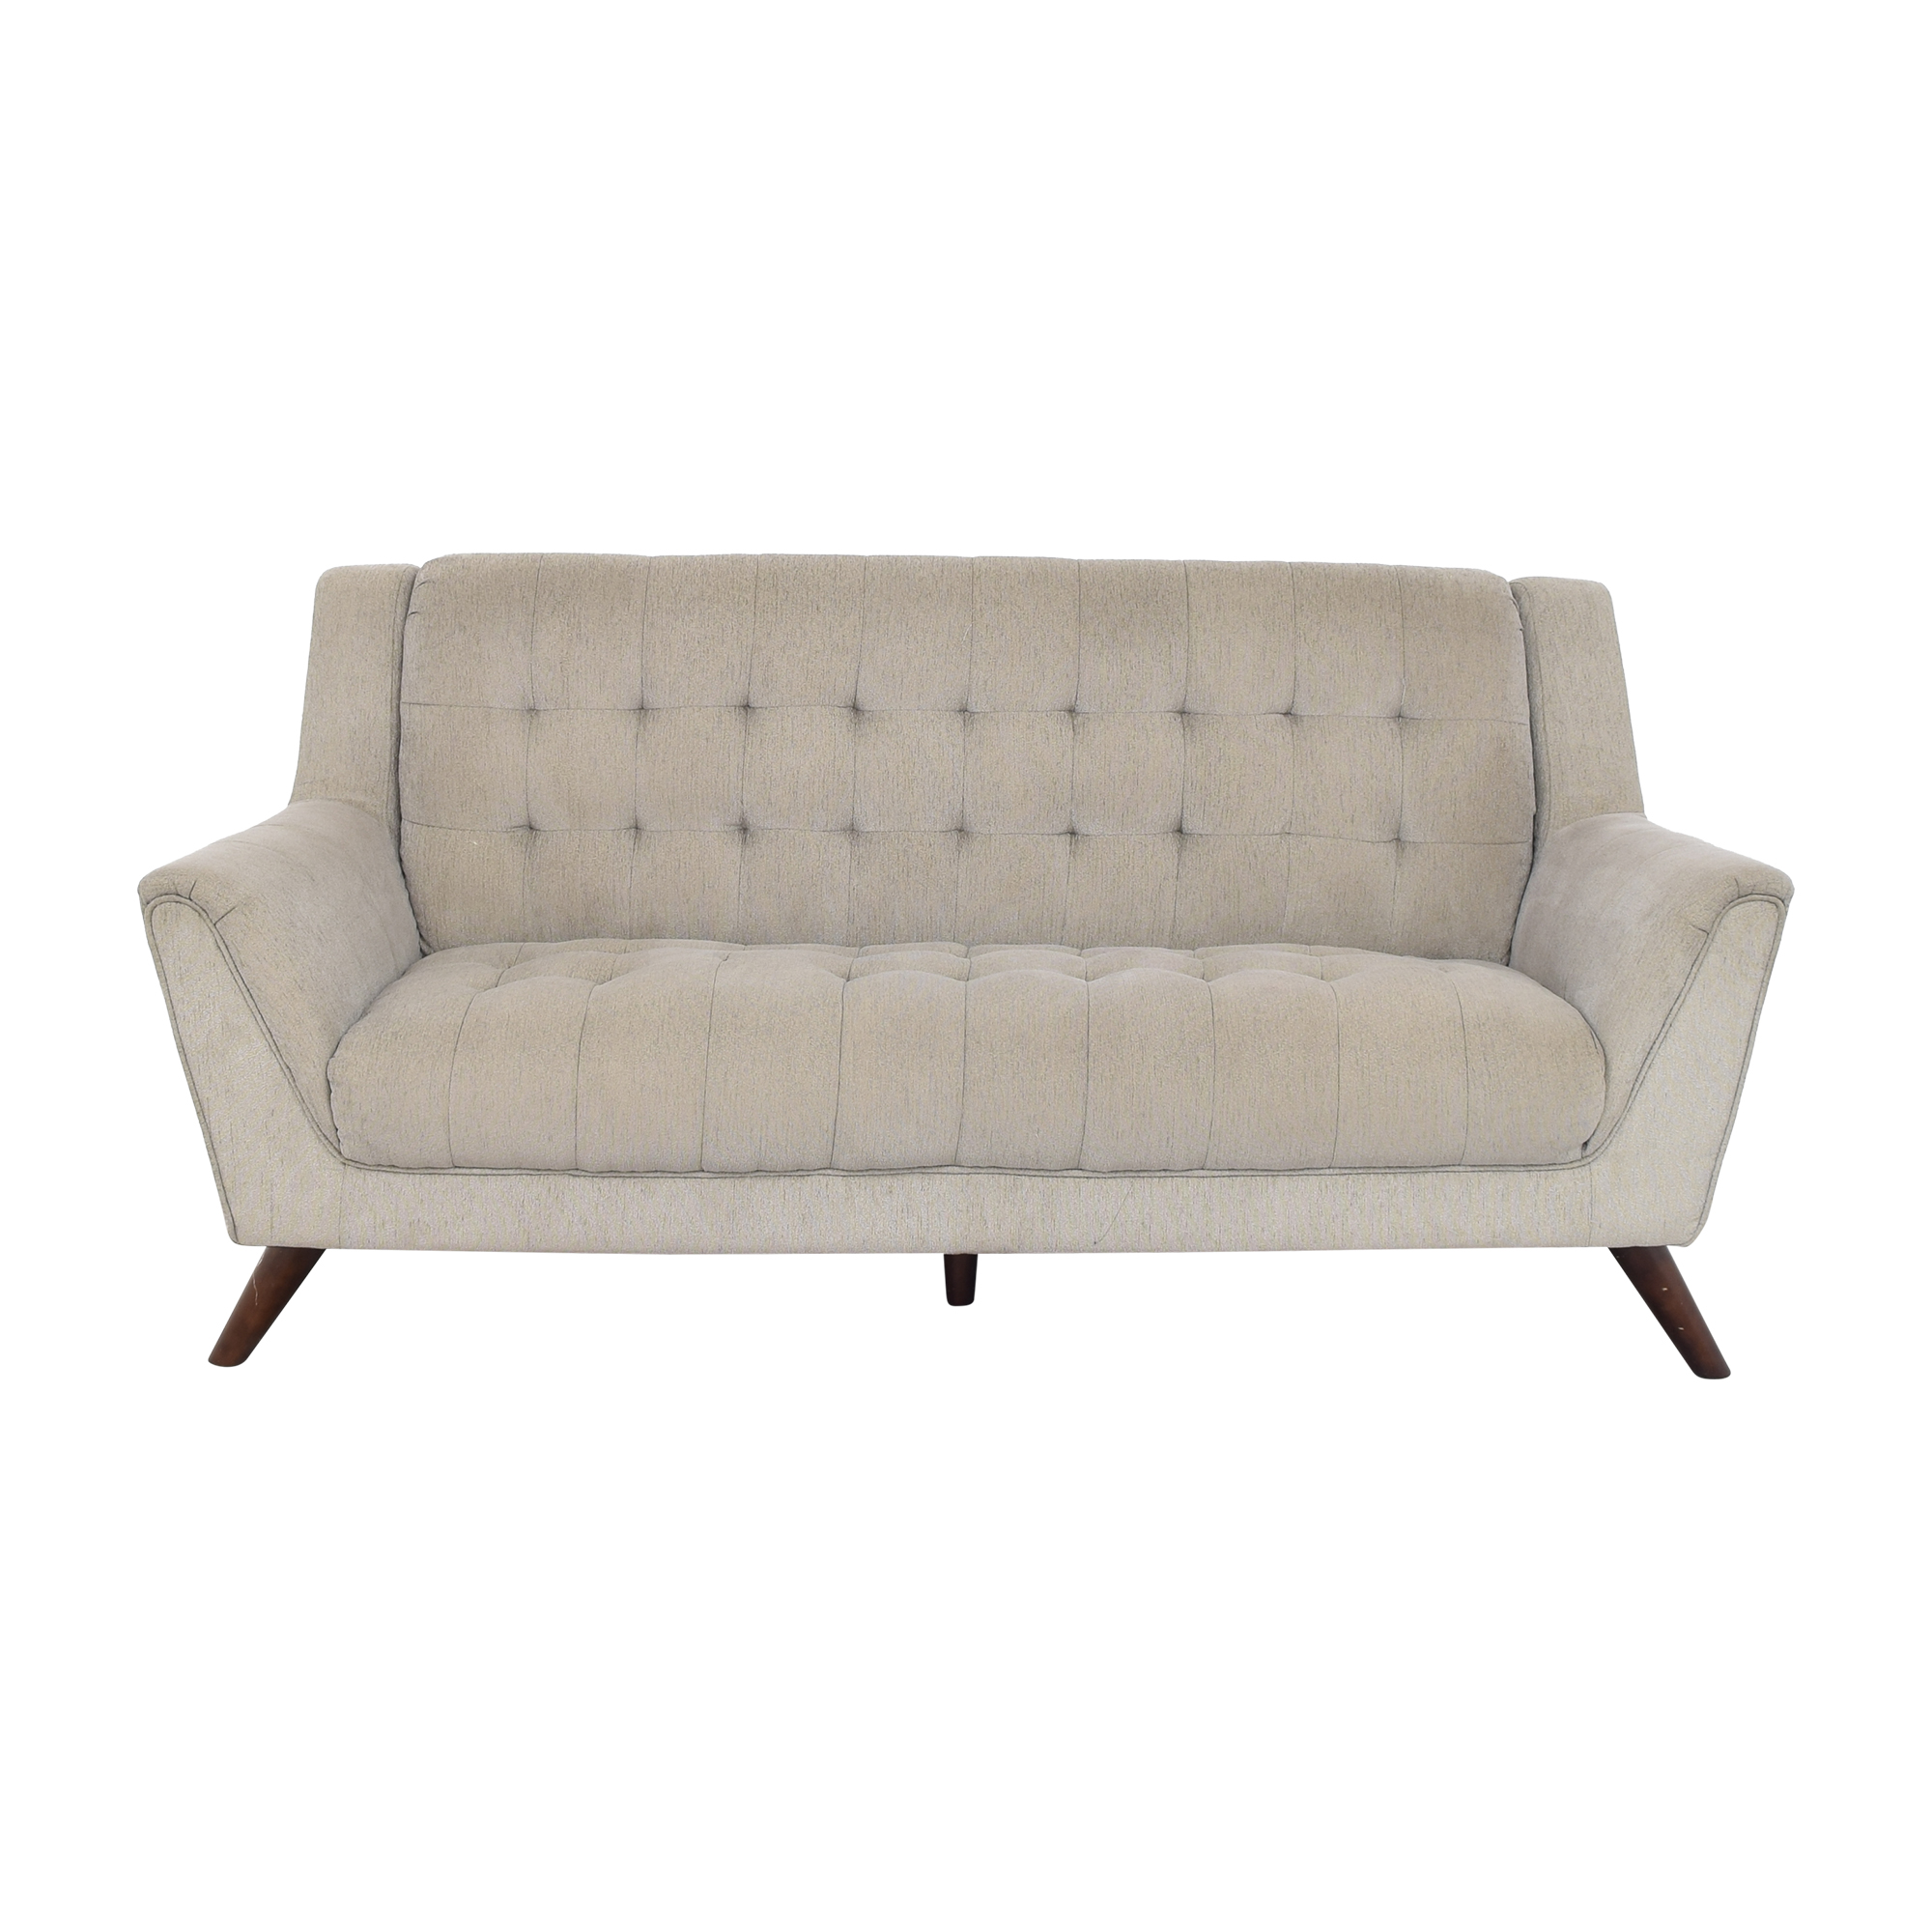 Coaster Fine Furniture Coaster Mid Century Sofa Classic Sofas